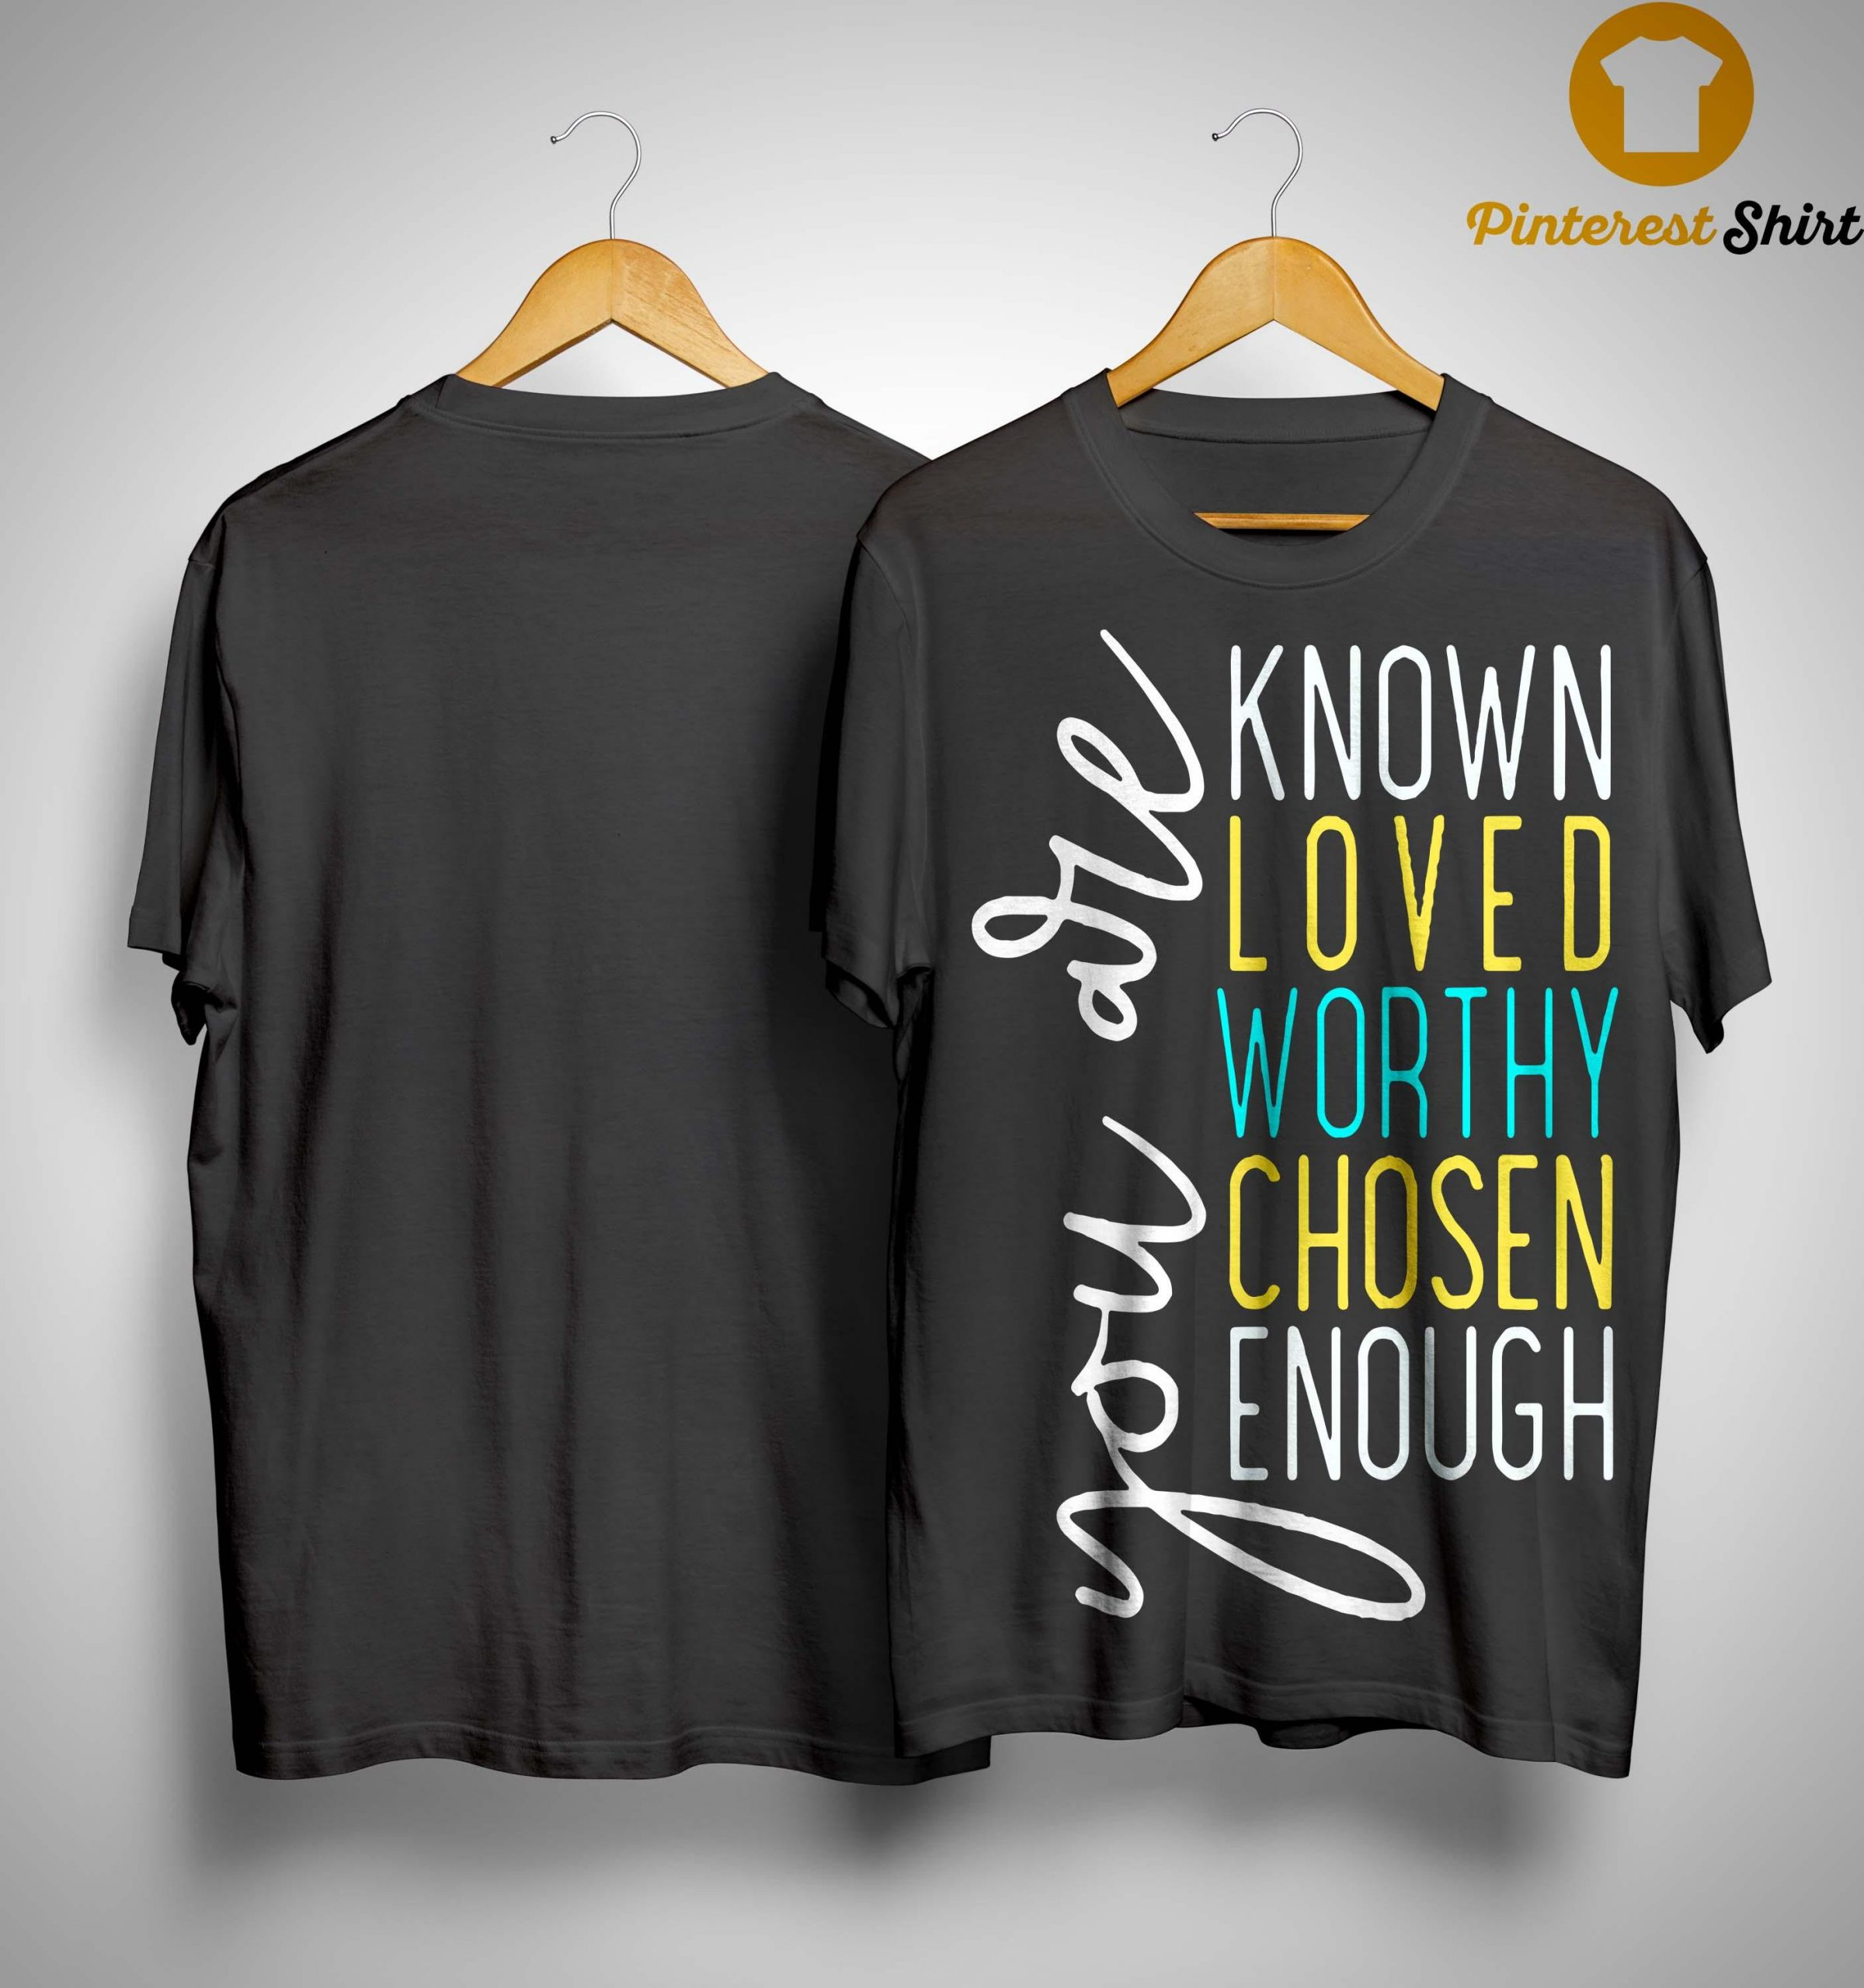 You Are Known Loved Worthy Chosen Enough You Are Loved T Shirt